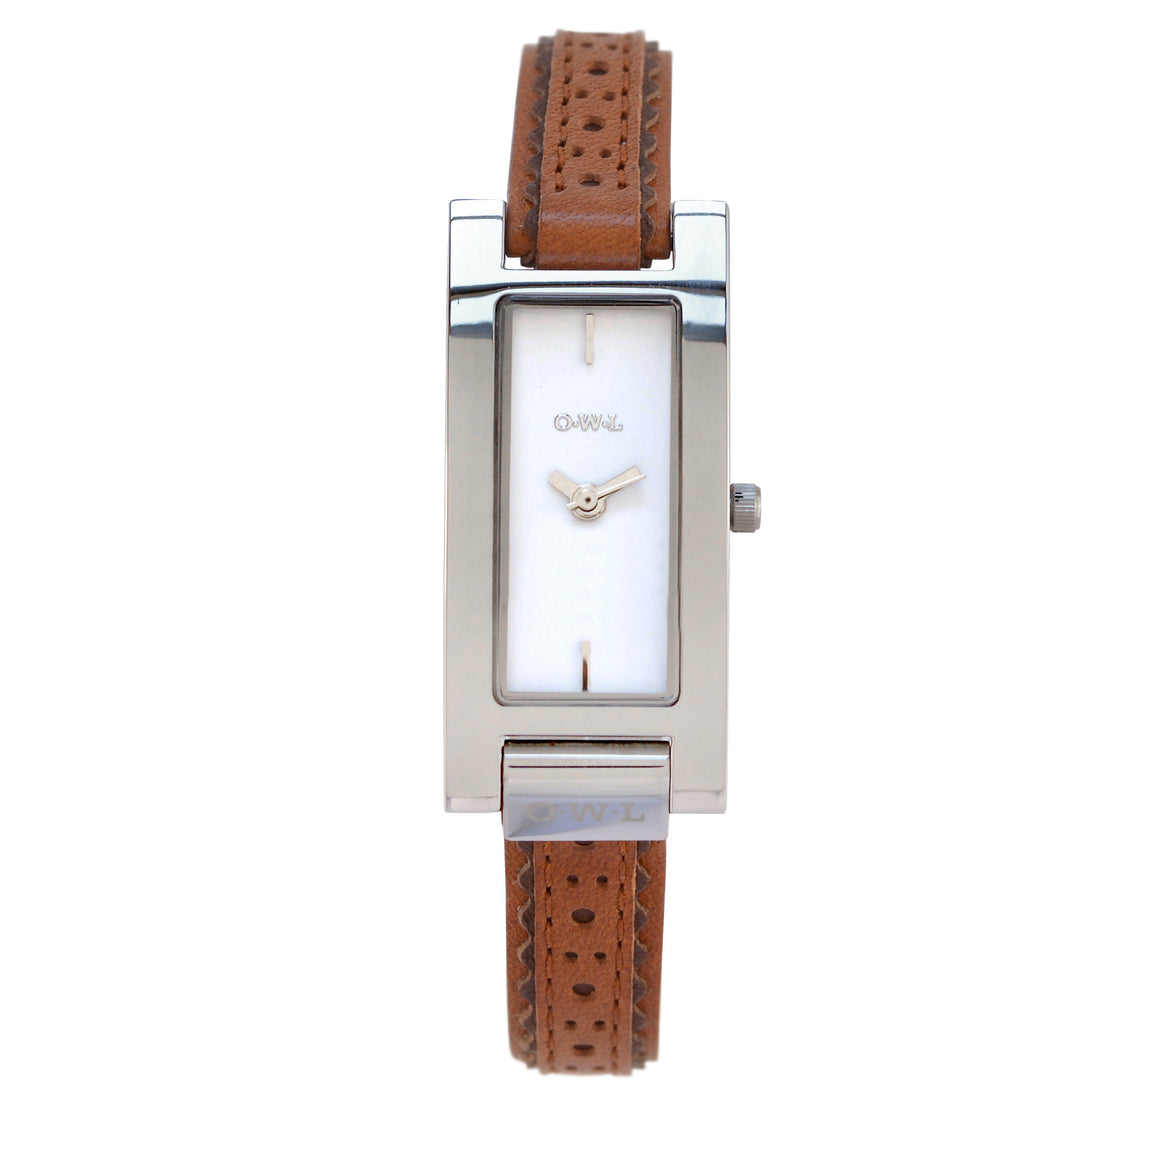 BROMPTON STEEL CASE WITH A CLEAN WHITE DIAL & A TAN BROGUE INSPIRED STRAP - OWL watches